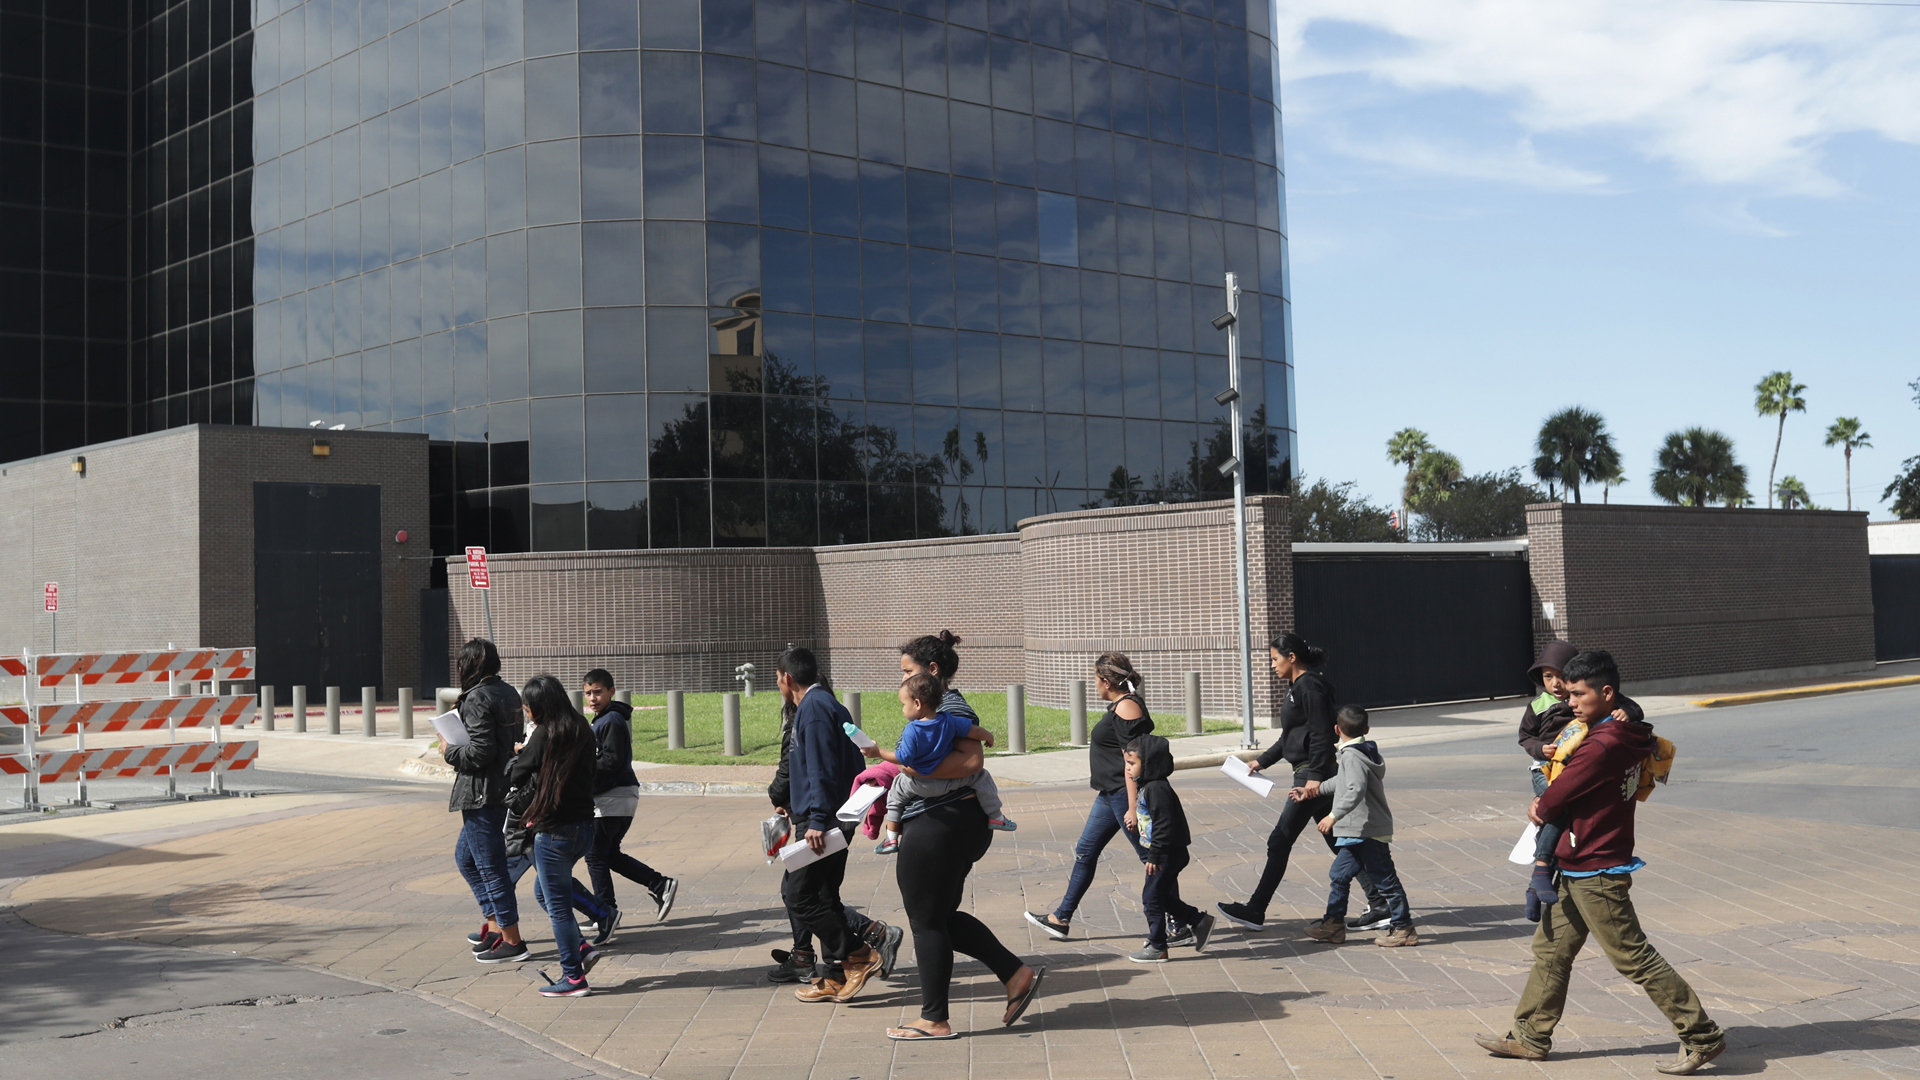 Immigrant asylum seekers walk past a U.S. federal courthouse after being released by U.S. Customs and Border Protection on Nov. 1, 2018 in McAllen, Texas. (Credit: John Moore/Getty Images)